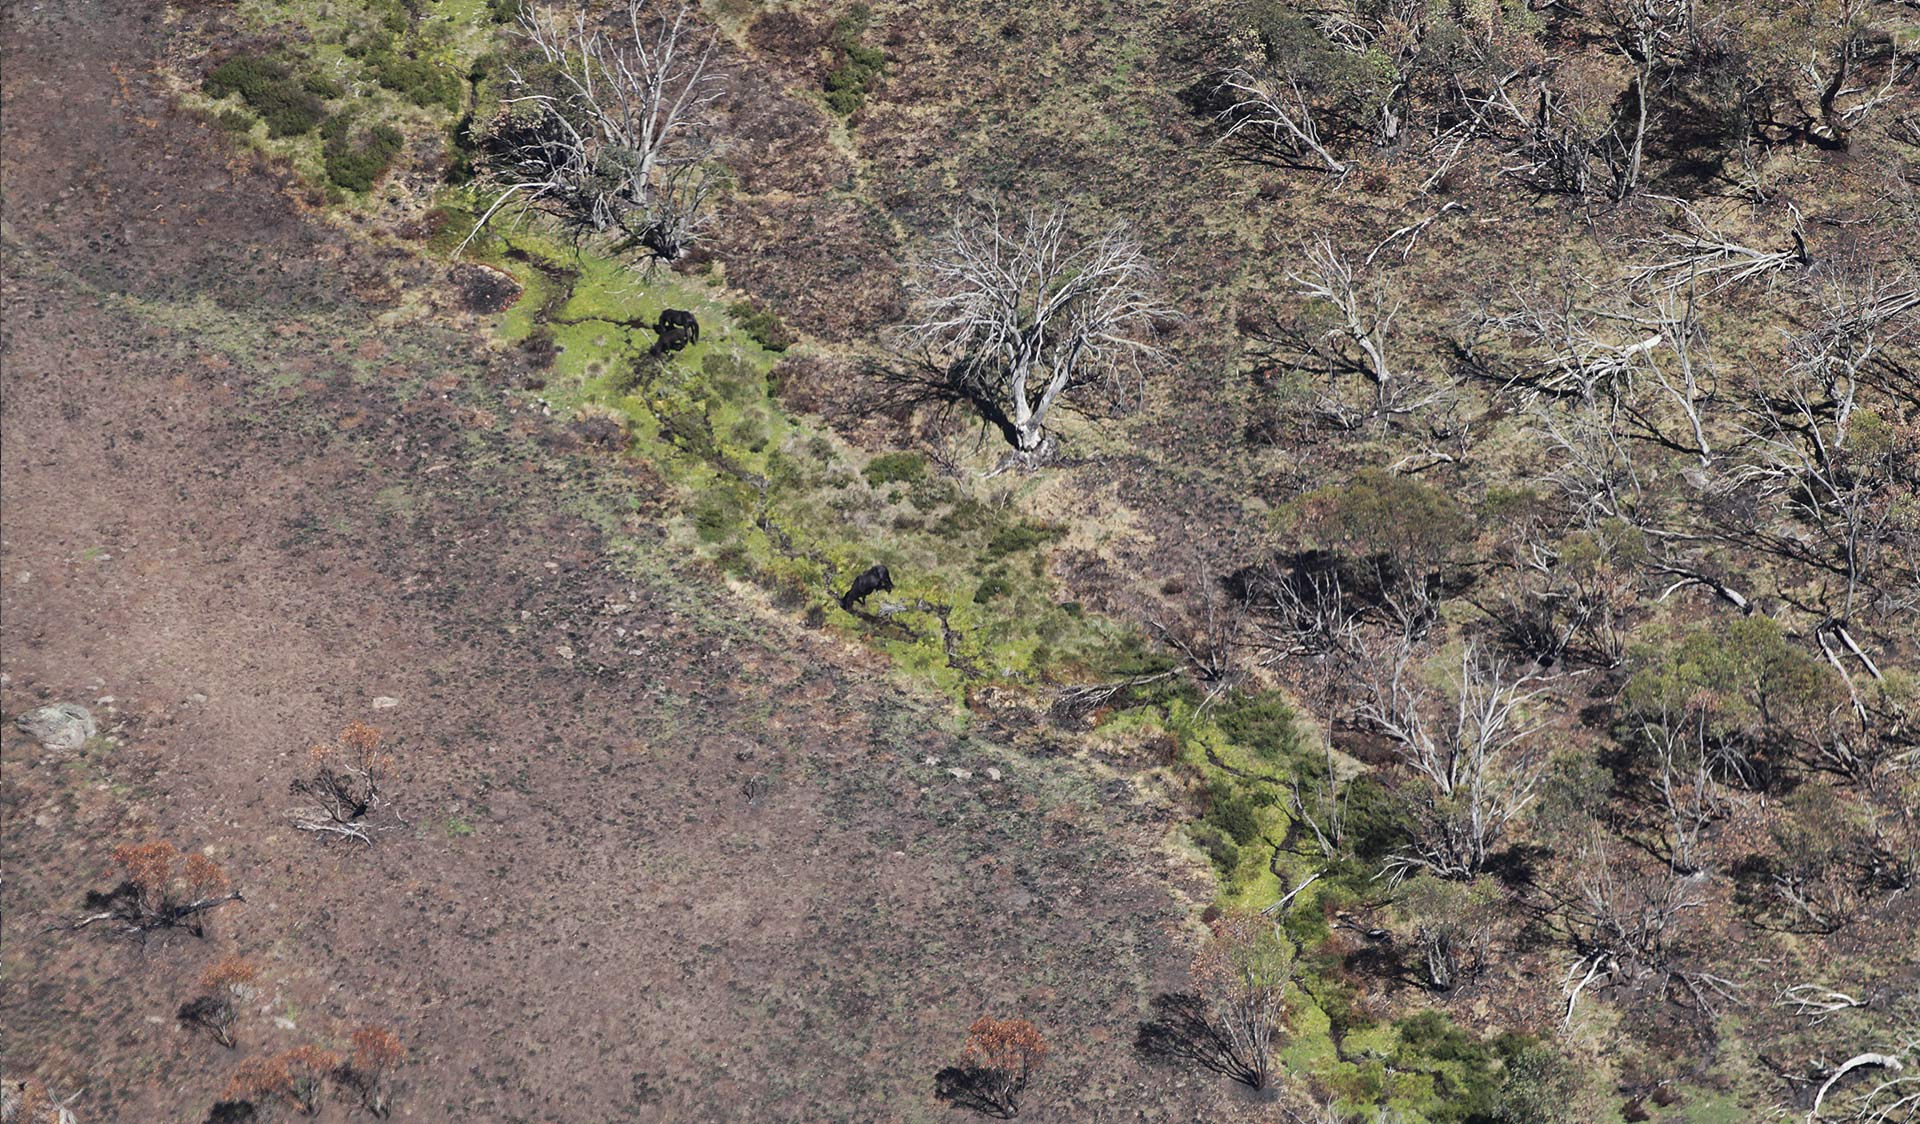 Feral horses in waterways on bushfire-affected landscape, Alpine National Park